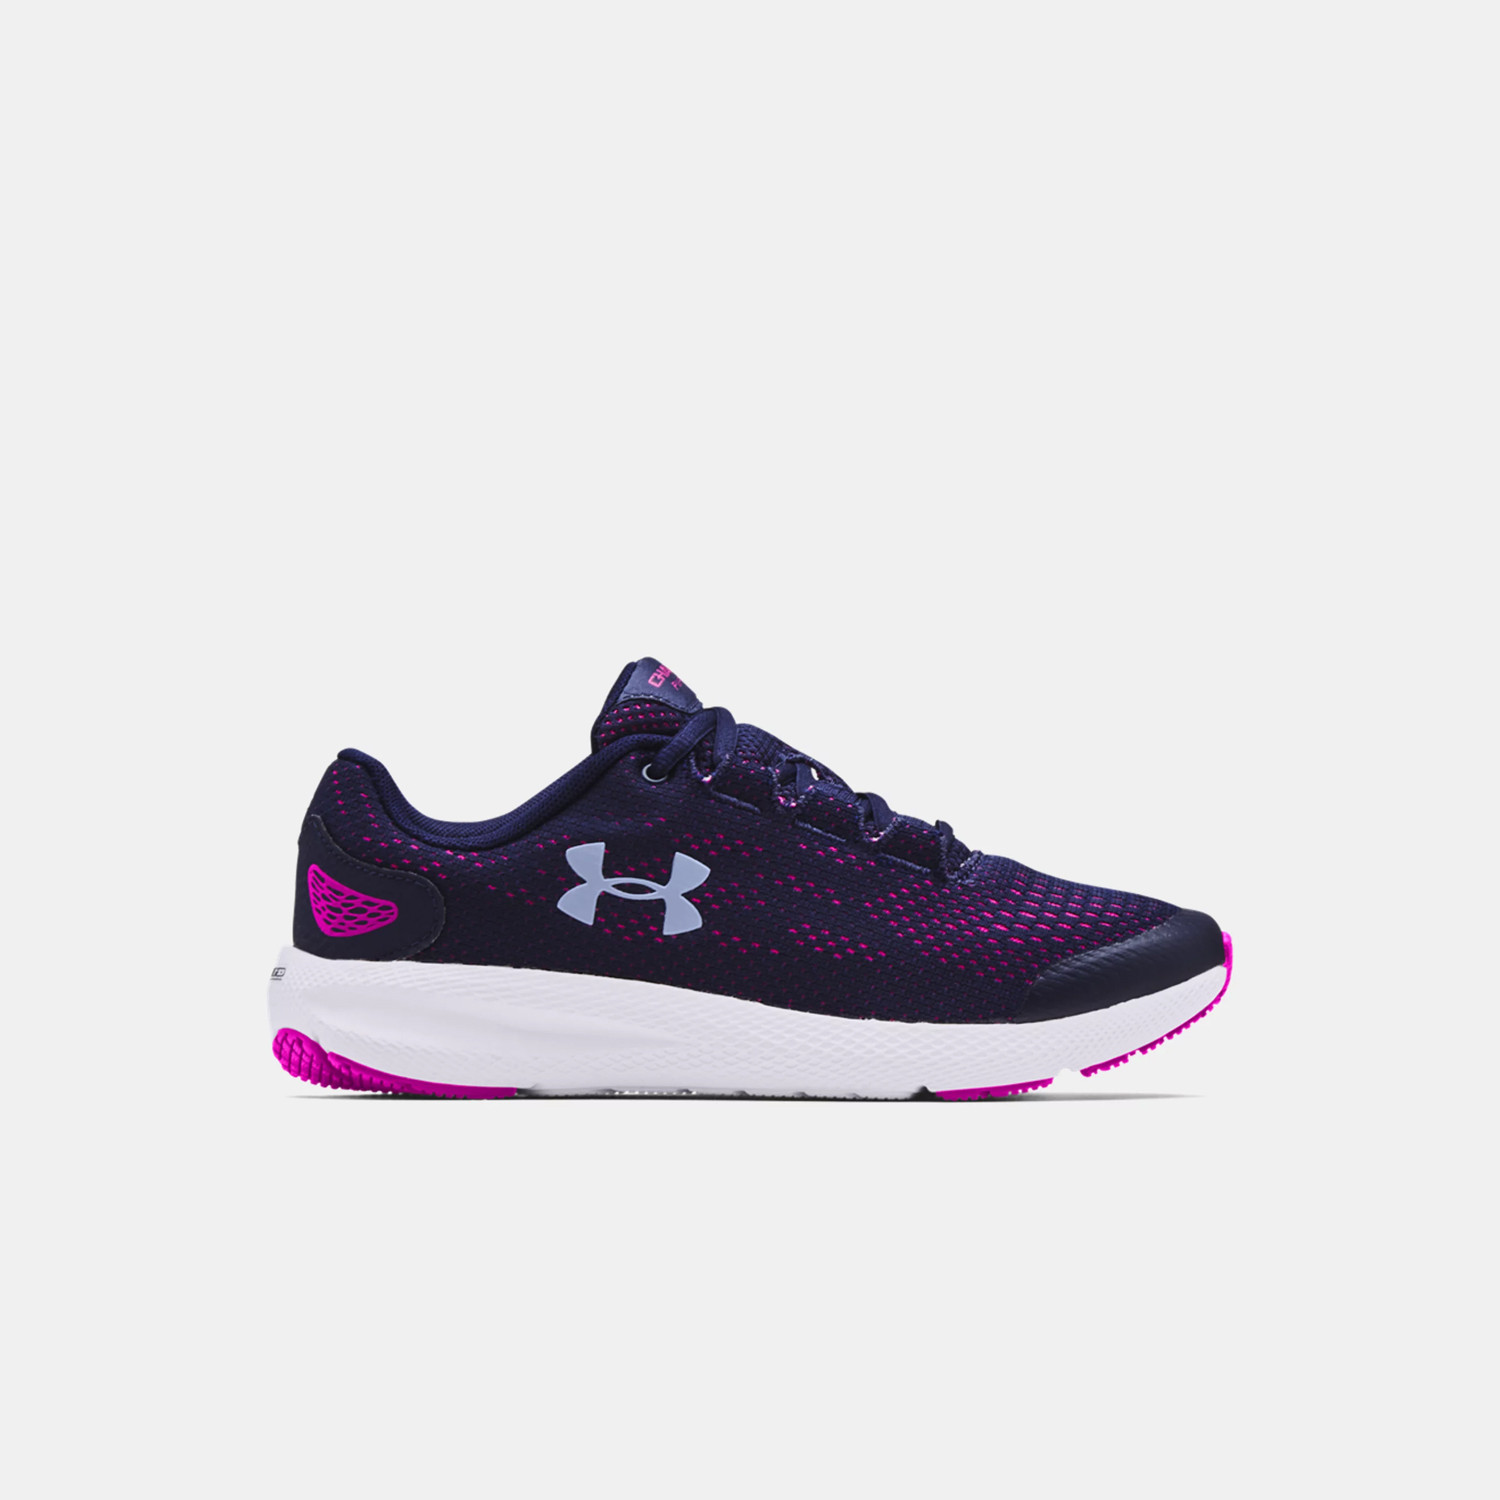 Under Armour Charged Pursuit 2 Παιδικά Παπούτσια (9000070891_50715)